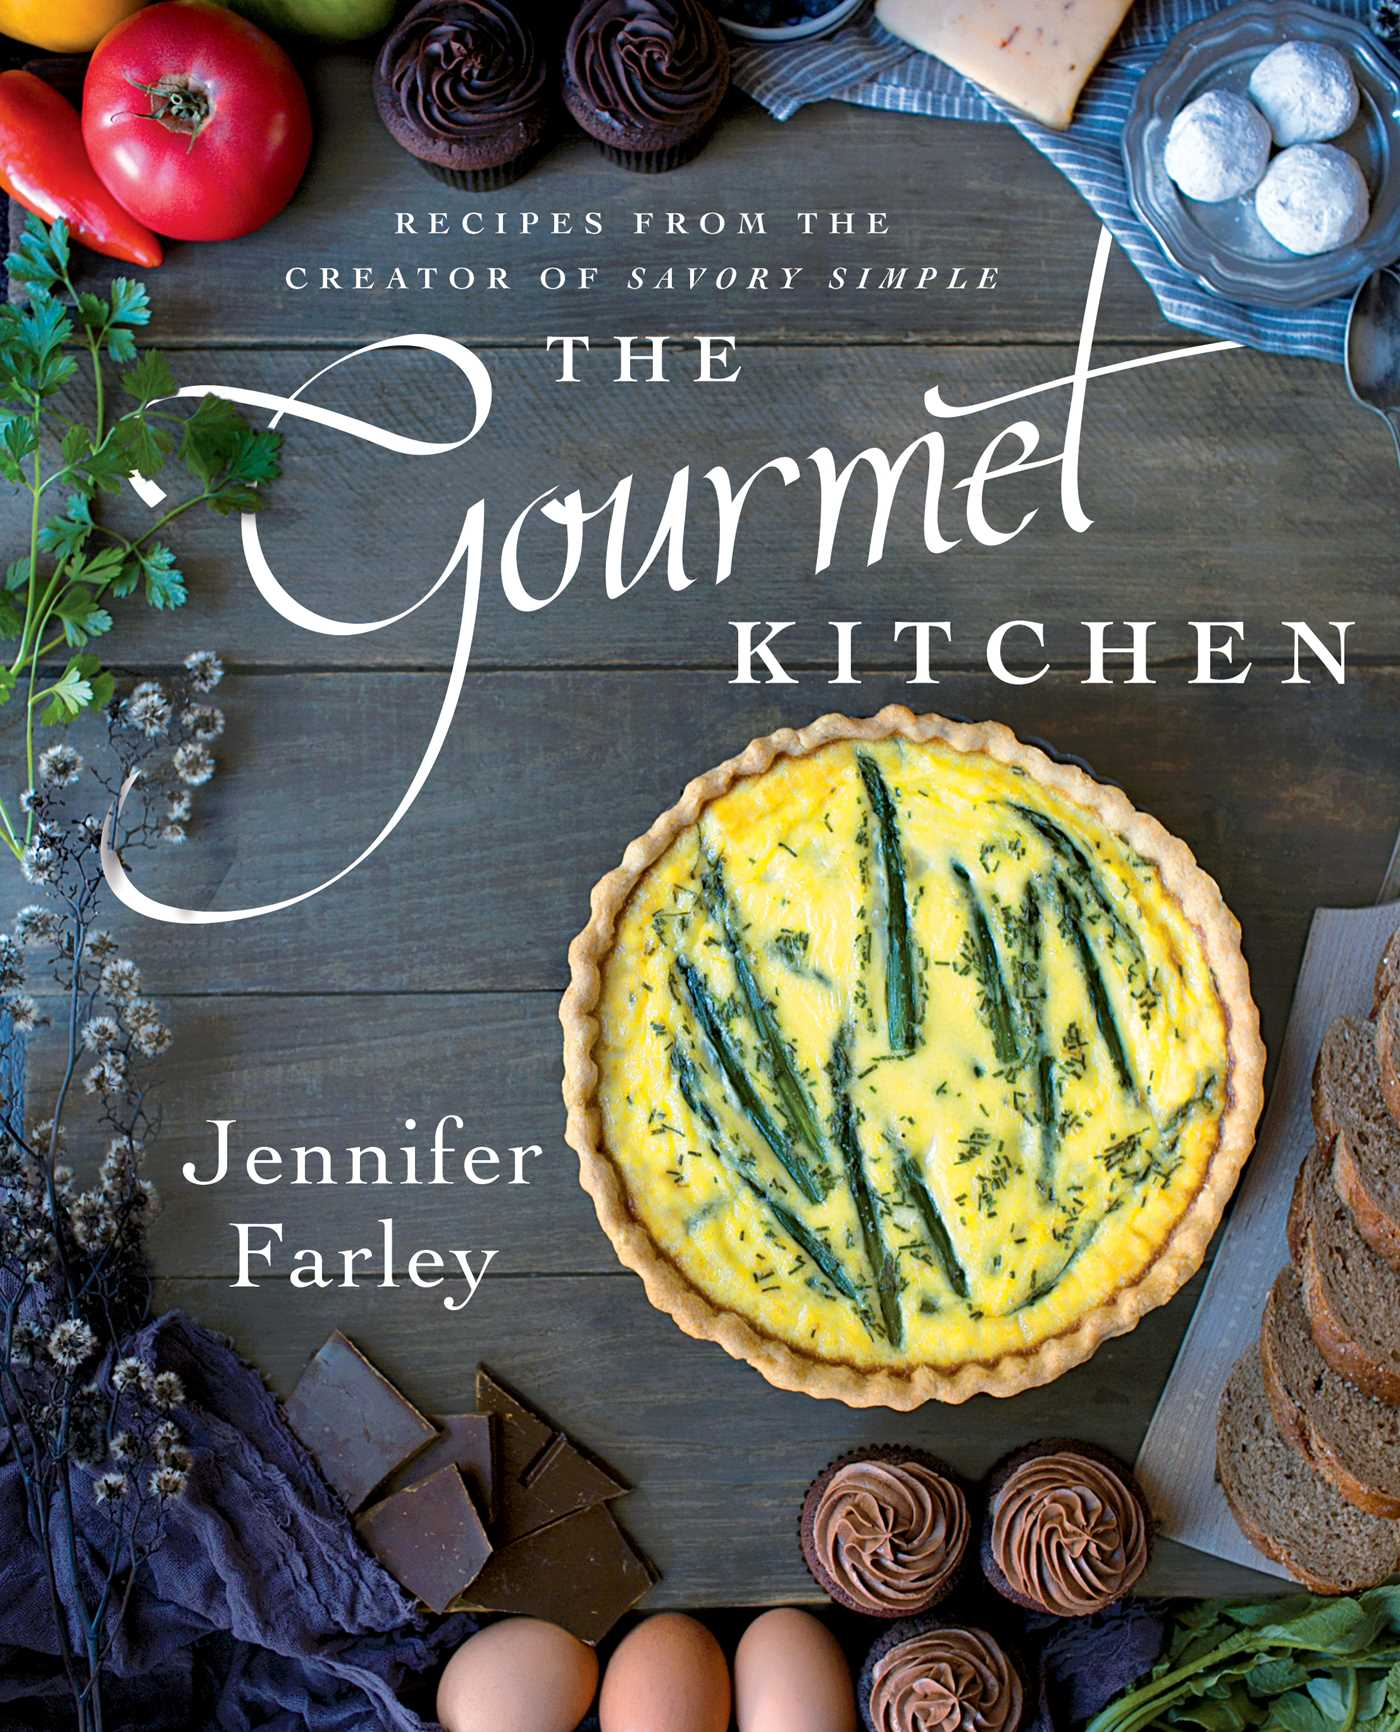 the gourmet kitchen 9781501102578 hr - Kitchen Gourment